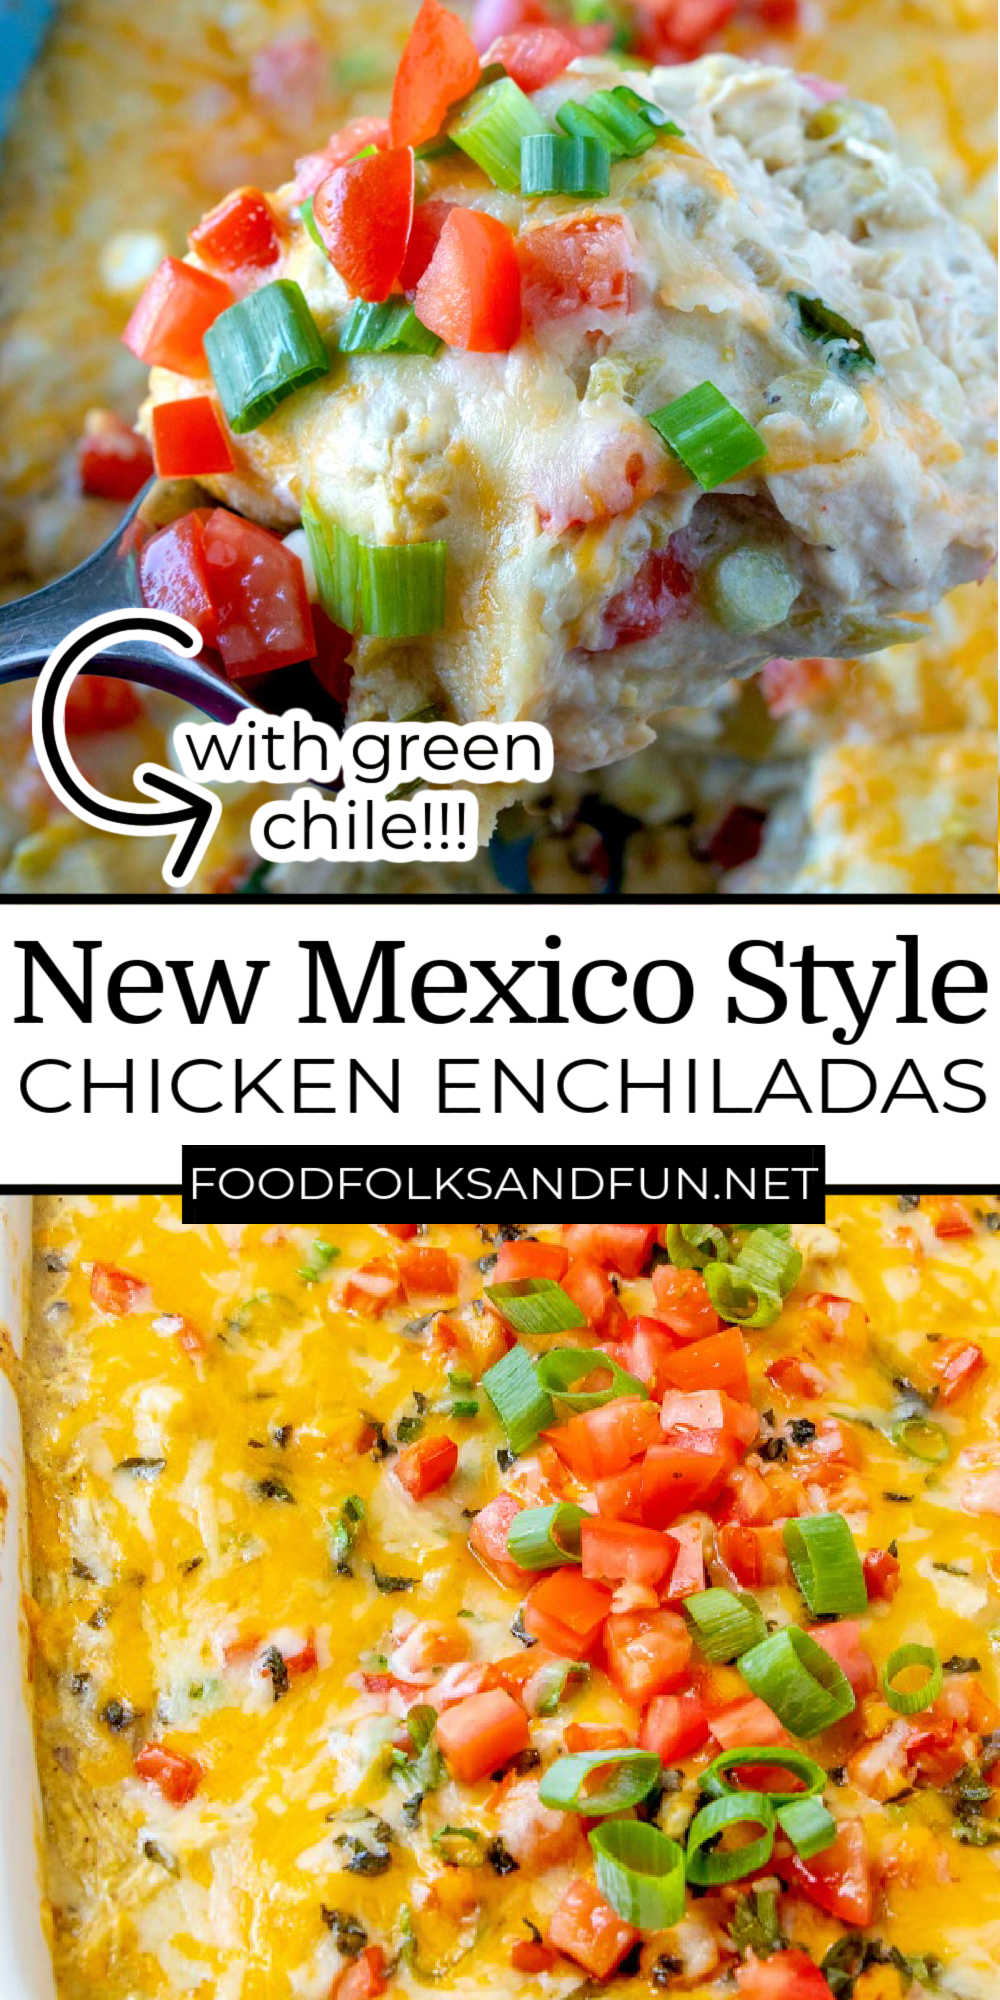 This easy New Mexico-style green chile chicken enchiladas recipe stacks the tortillas like a casserole instead of rolling them. Stacking makes them so much easier to make! via @foodfolksandfun